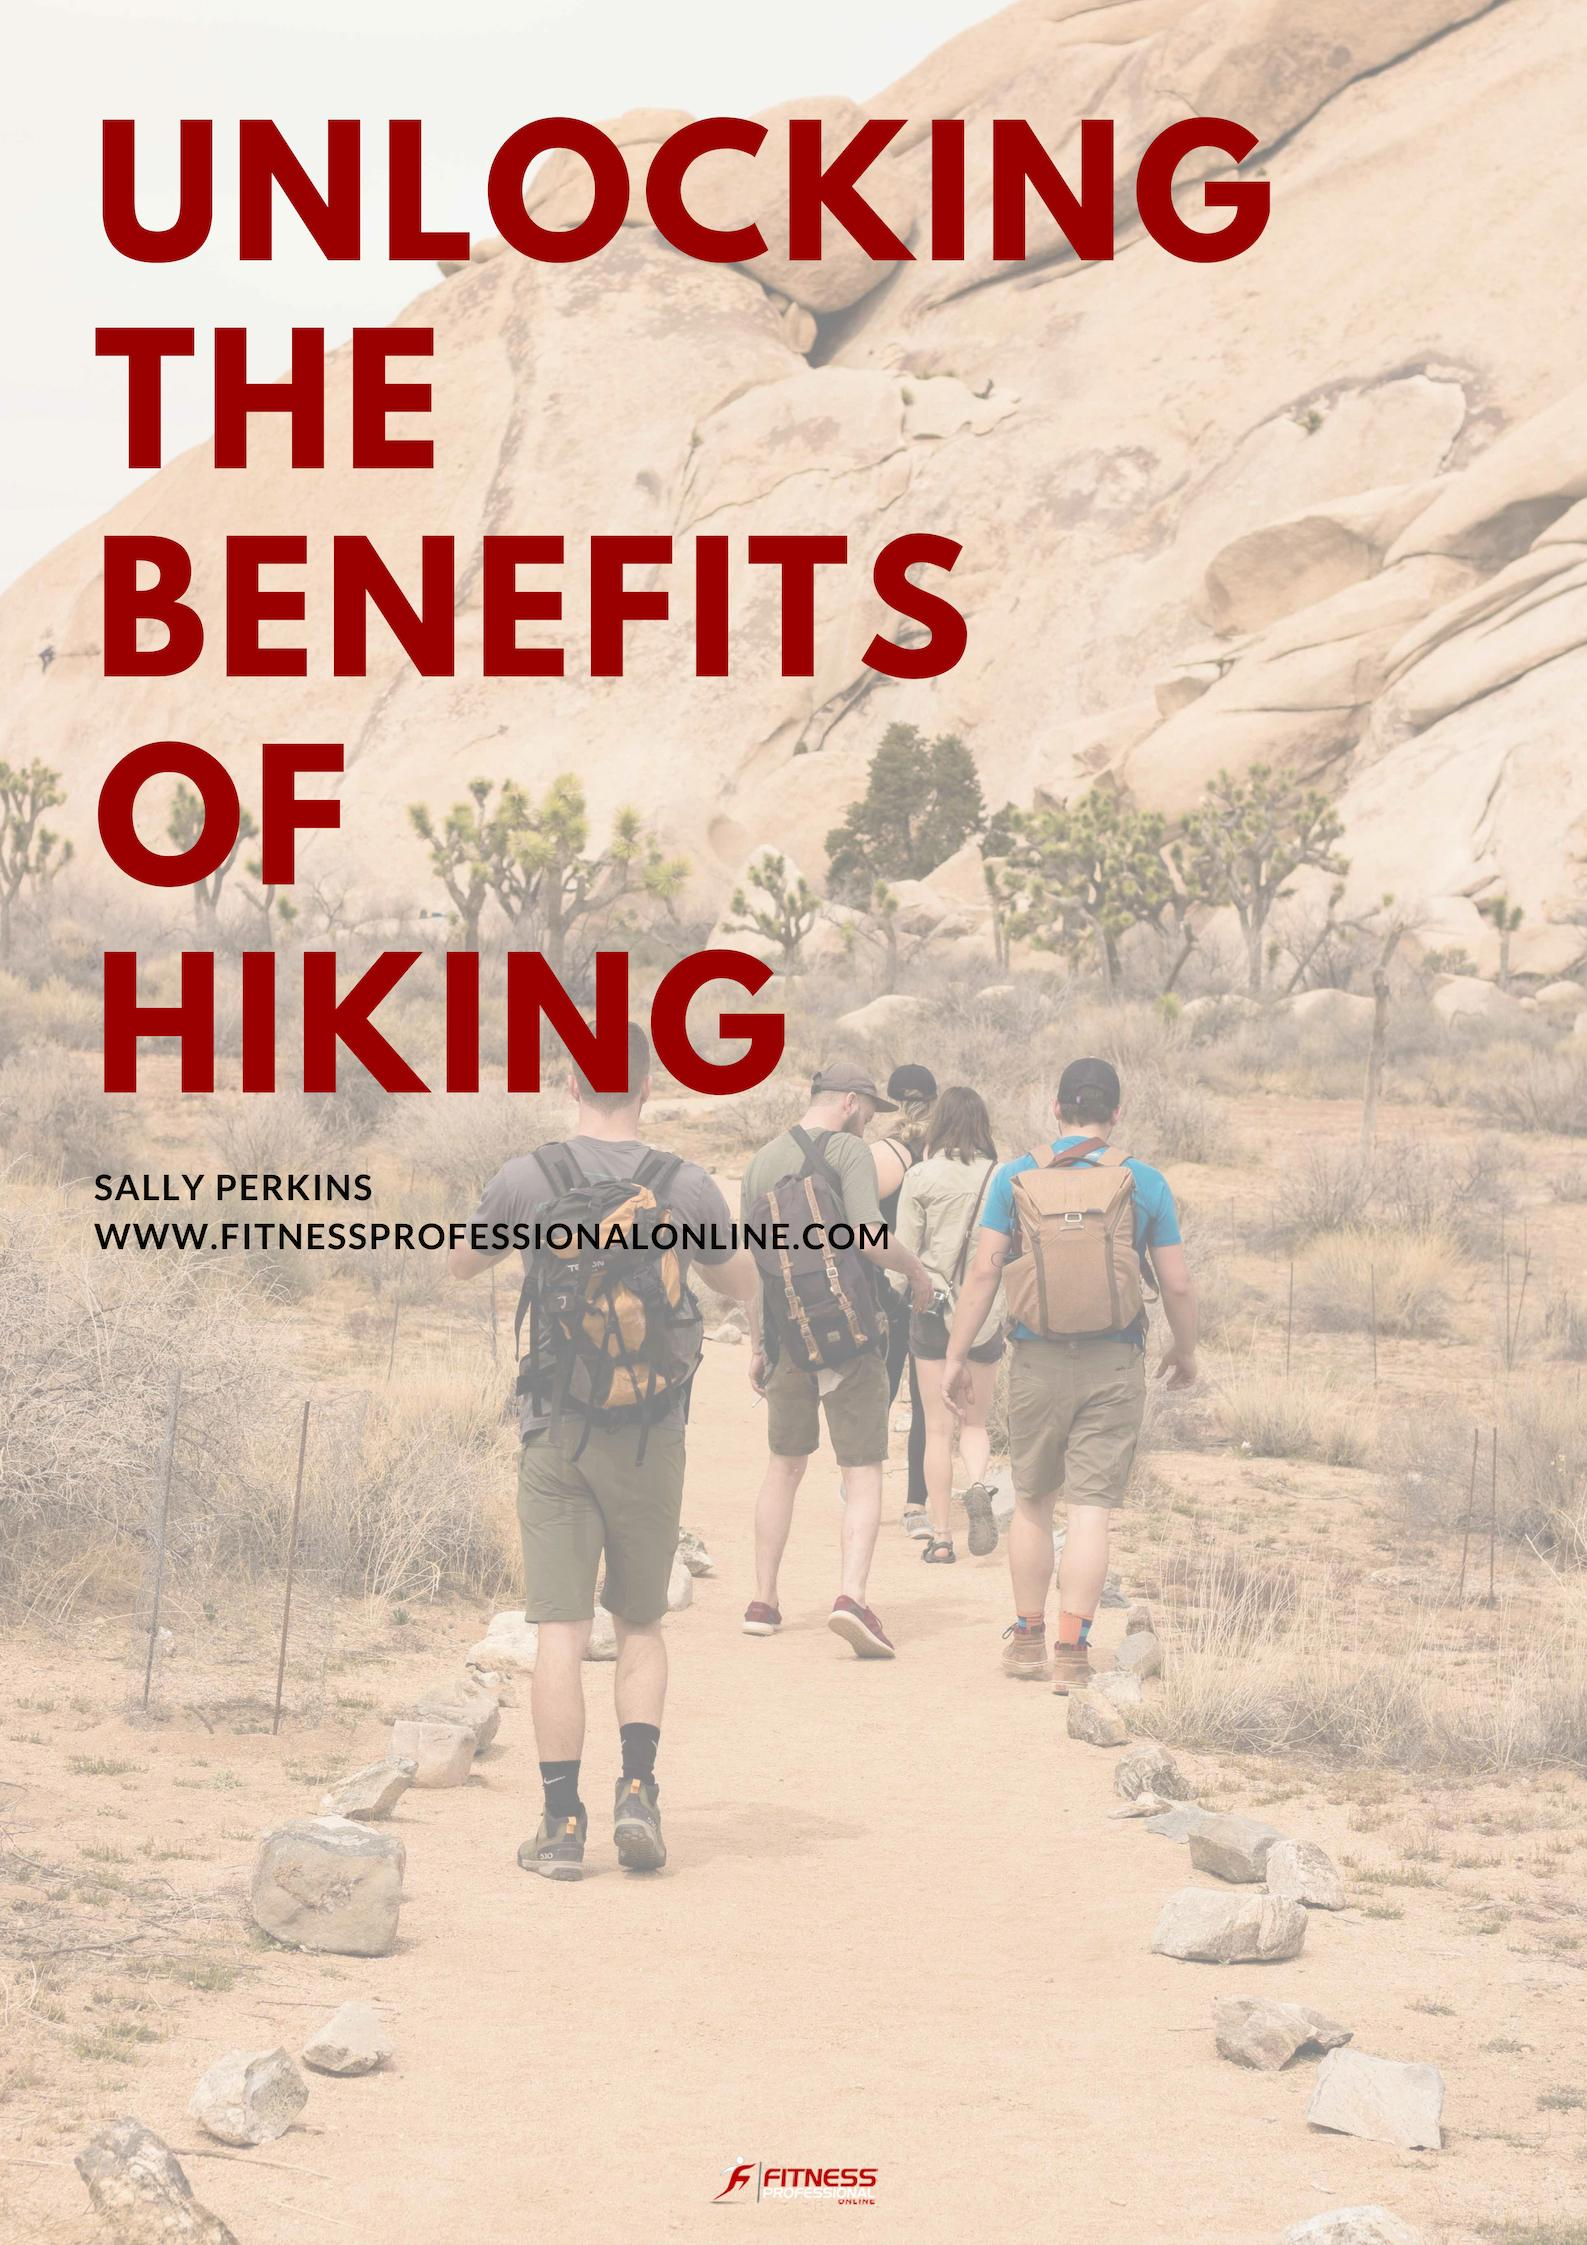 More and more people are seeking the health benefits of heading outdoors.